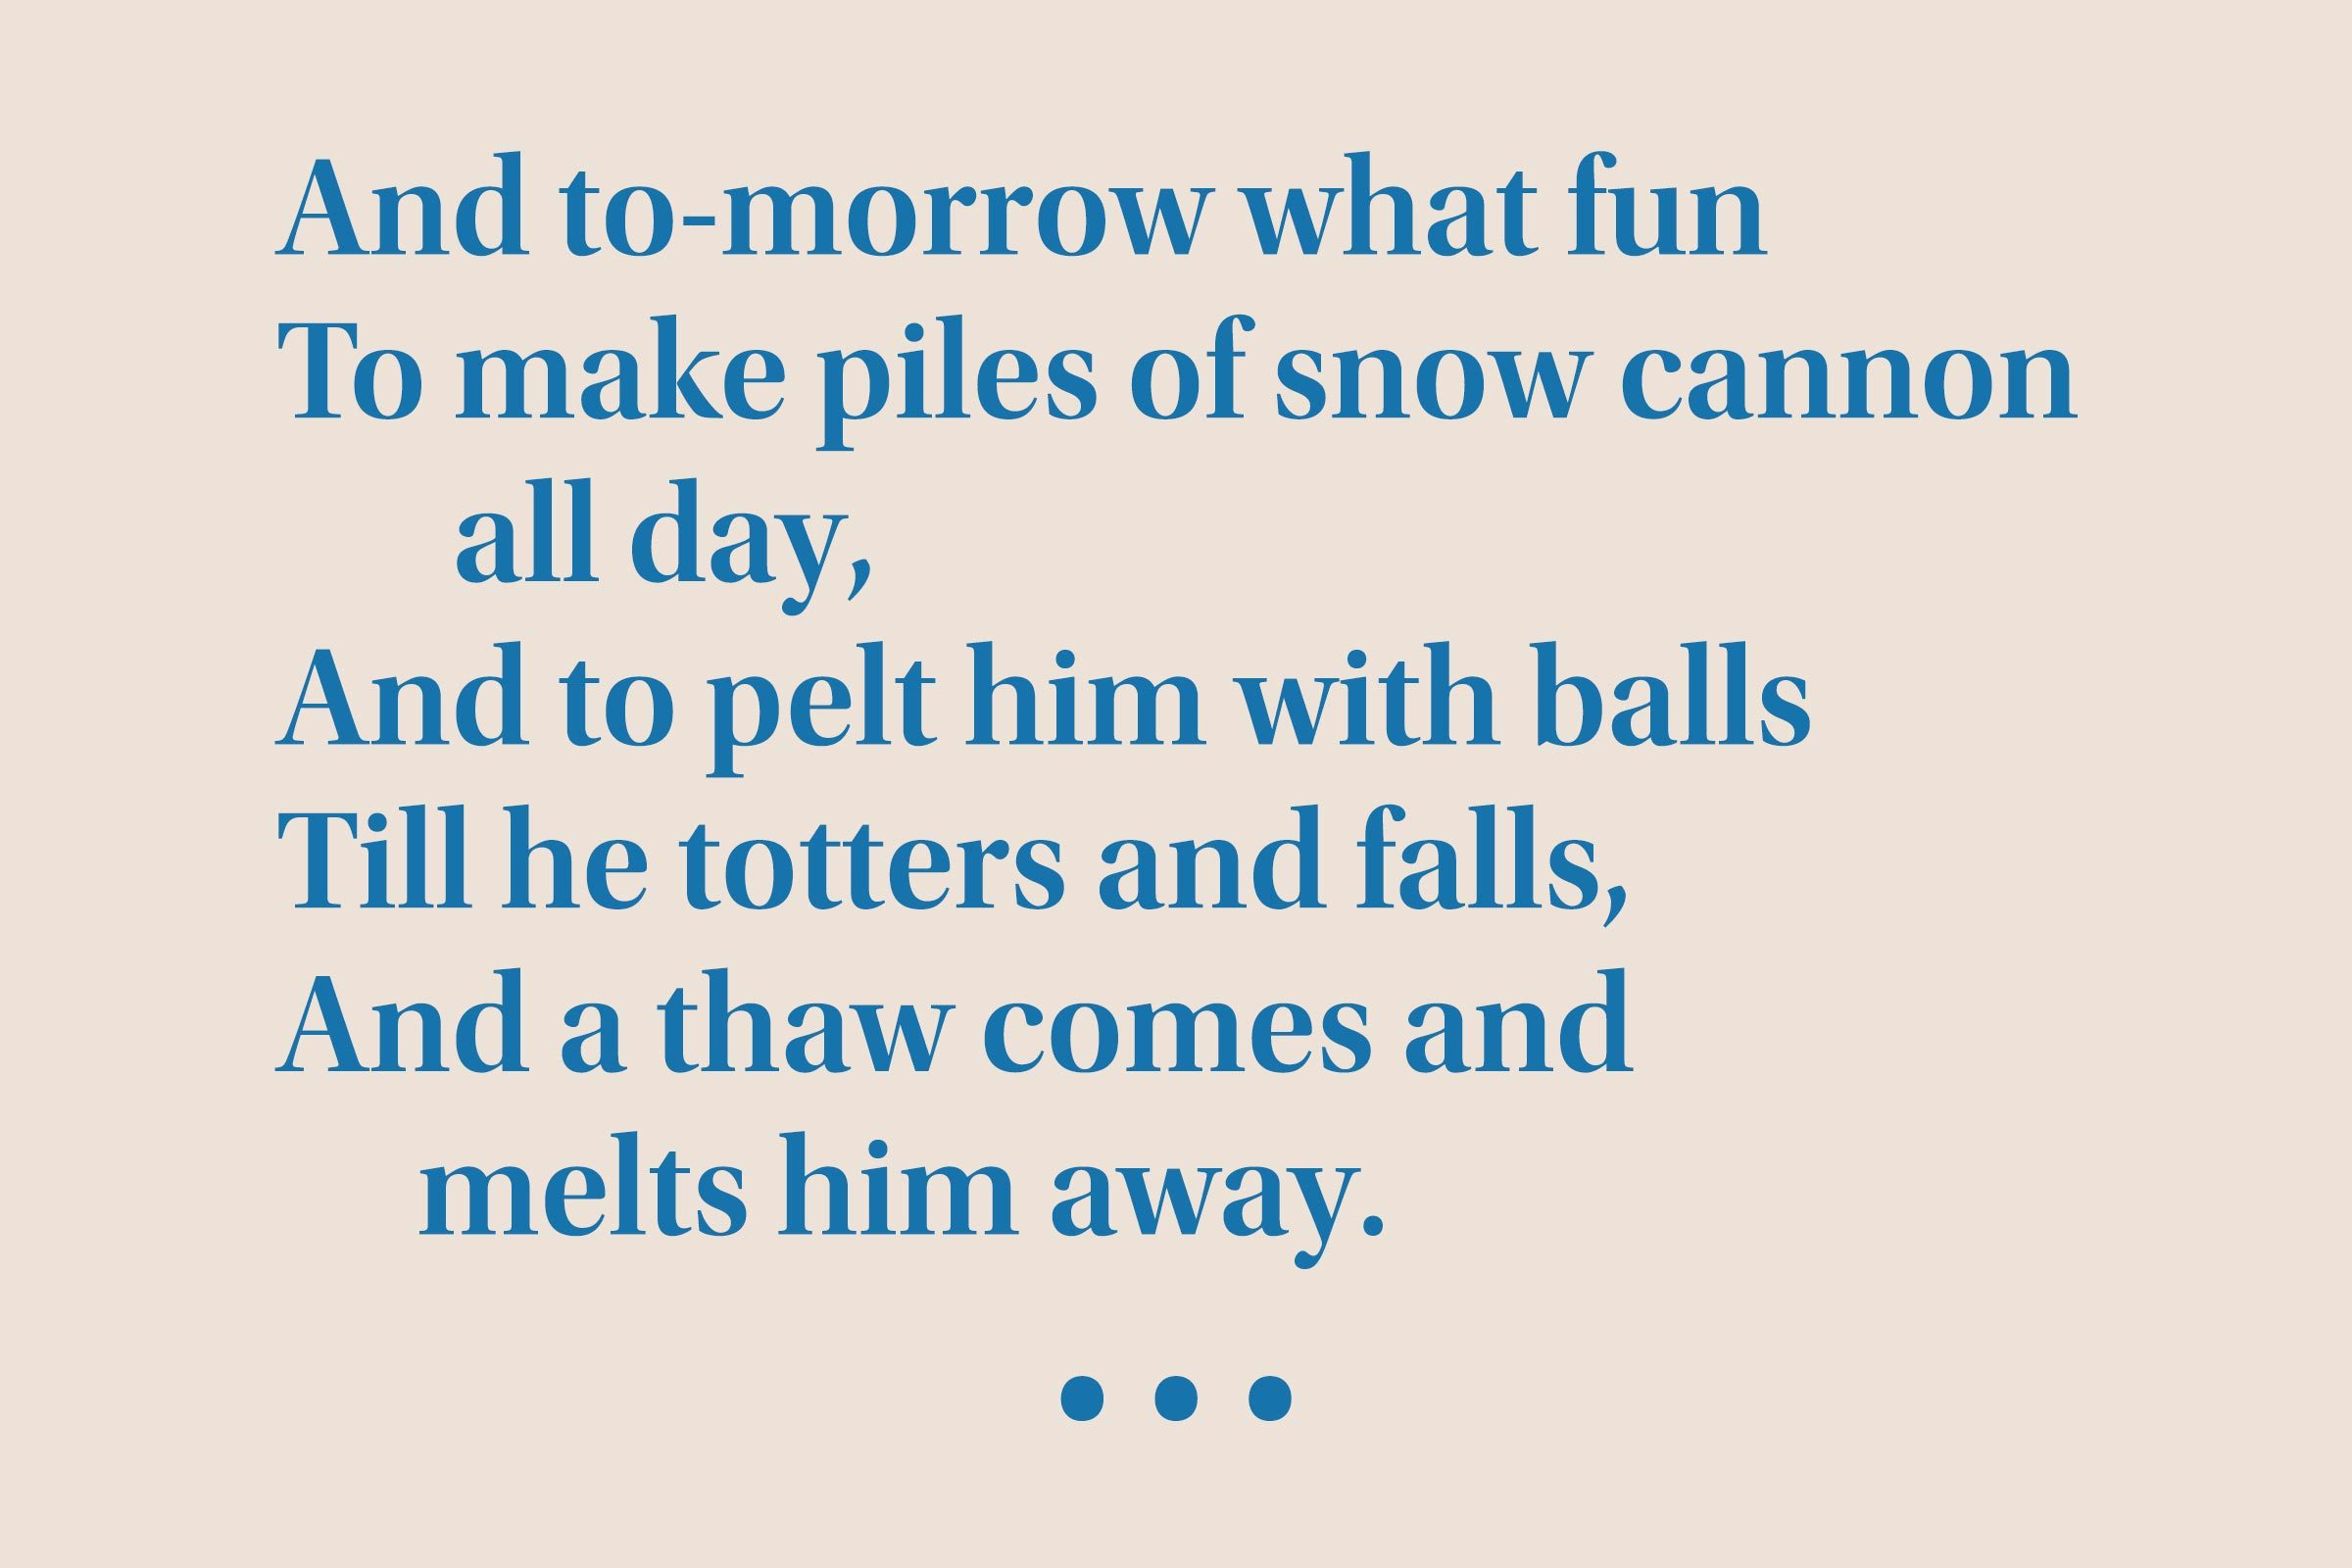 """""""And to-morrow what fun To make piles of snow cannon all day, And to pelt him with balls Till he totters and falls, And a thaw comes and melts him away."""""""